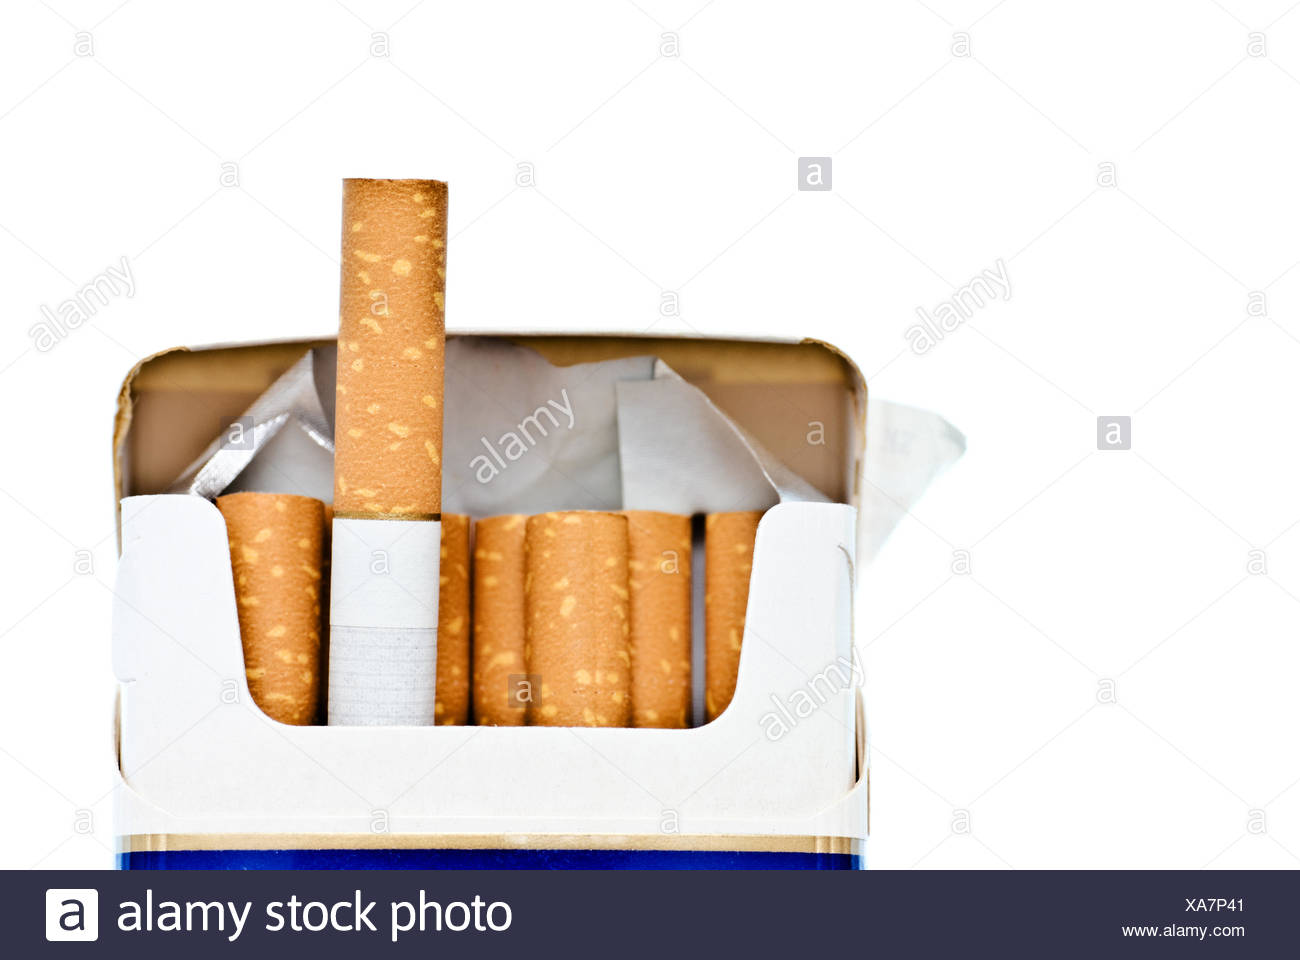 Retail price pack cigarettes Marlboro